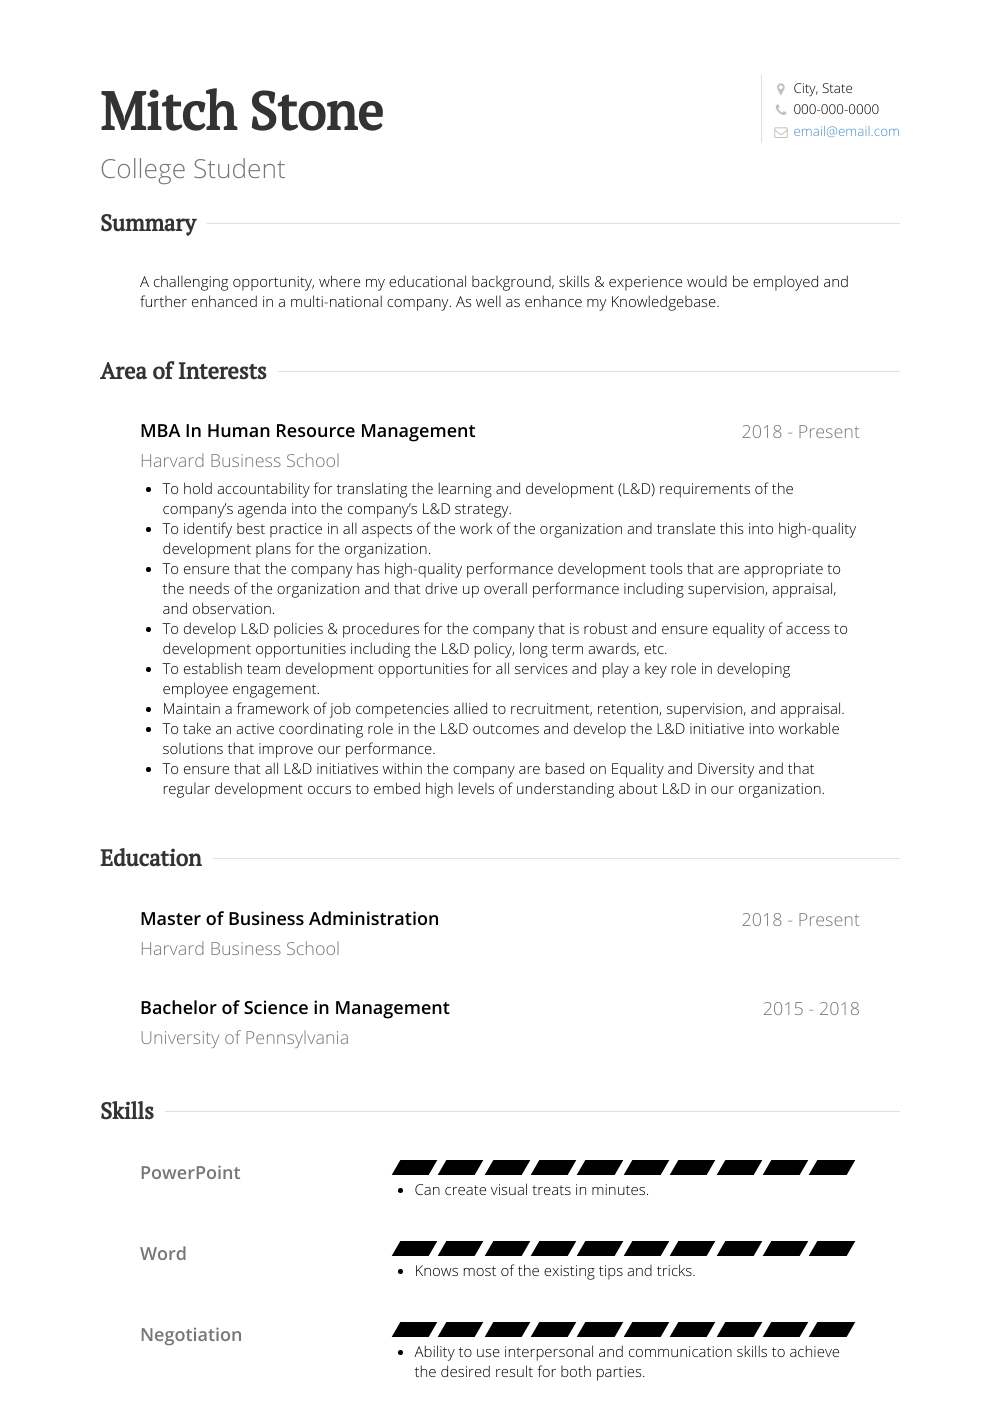 Resume Samples For College Student.College Student Resume Samples Templates Visualcv